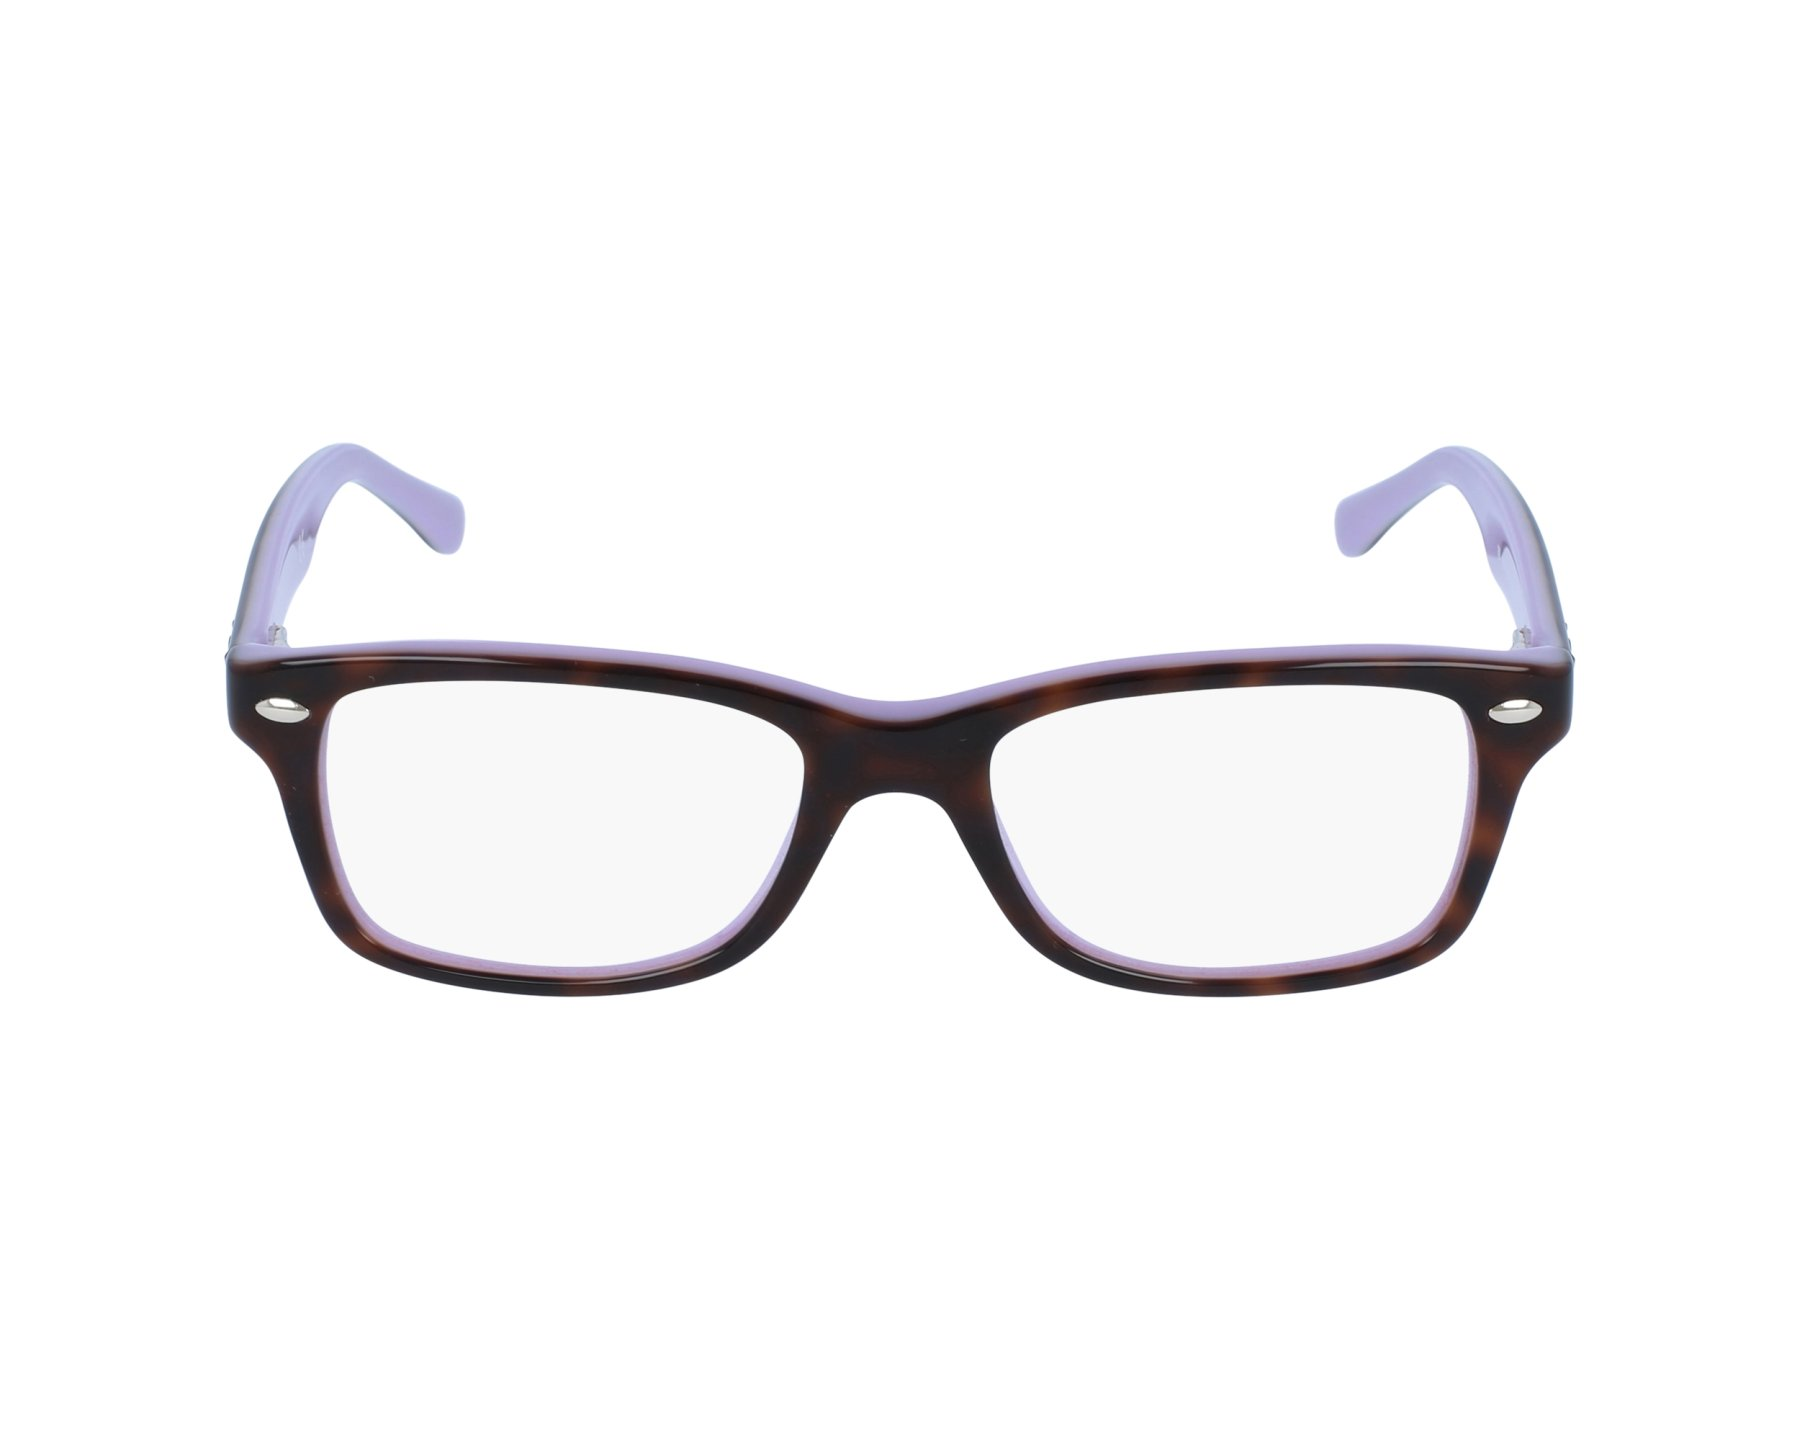 59a0c16a48cc36 eyeglasses Ray-Ban RY-1531 3700 48-16 Tortoise Purple profile view